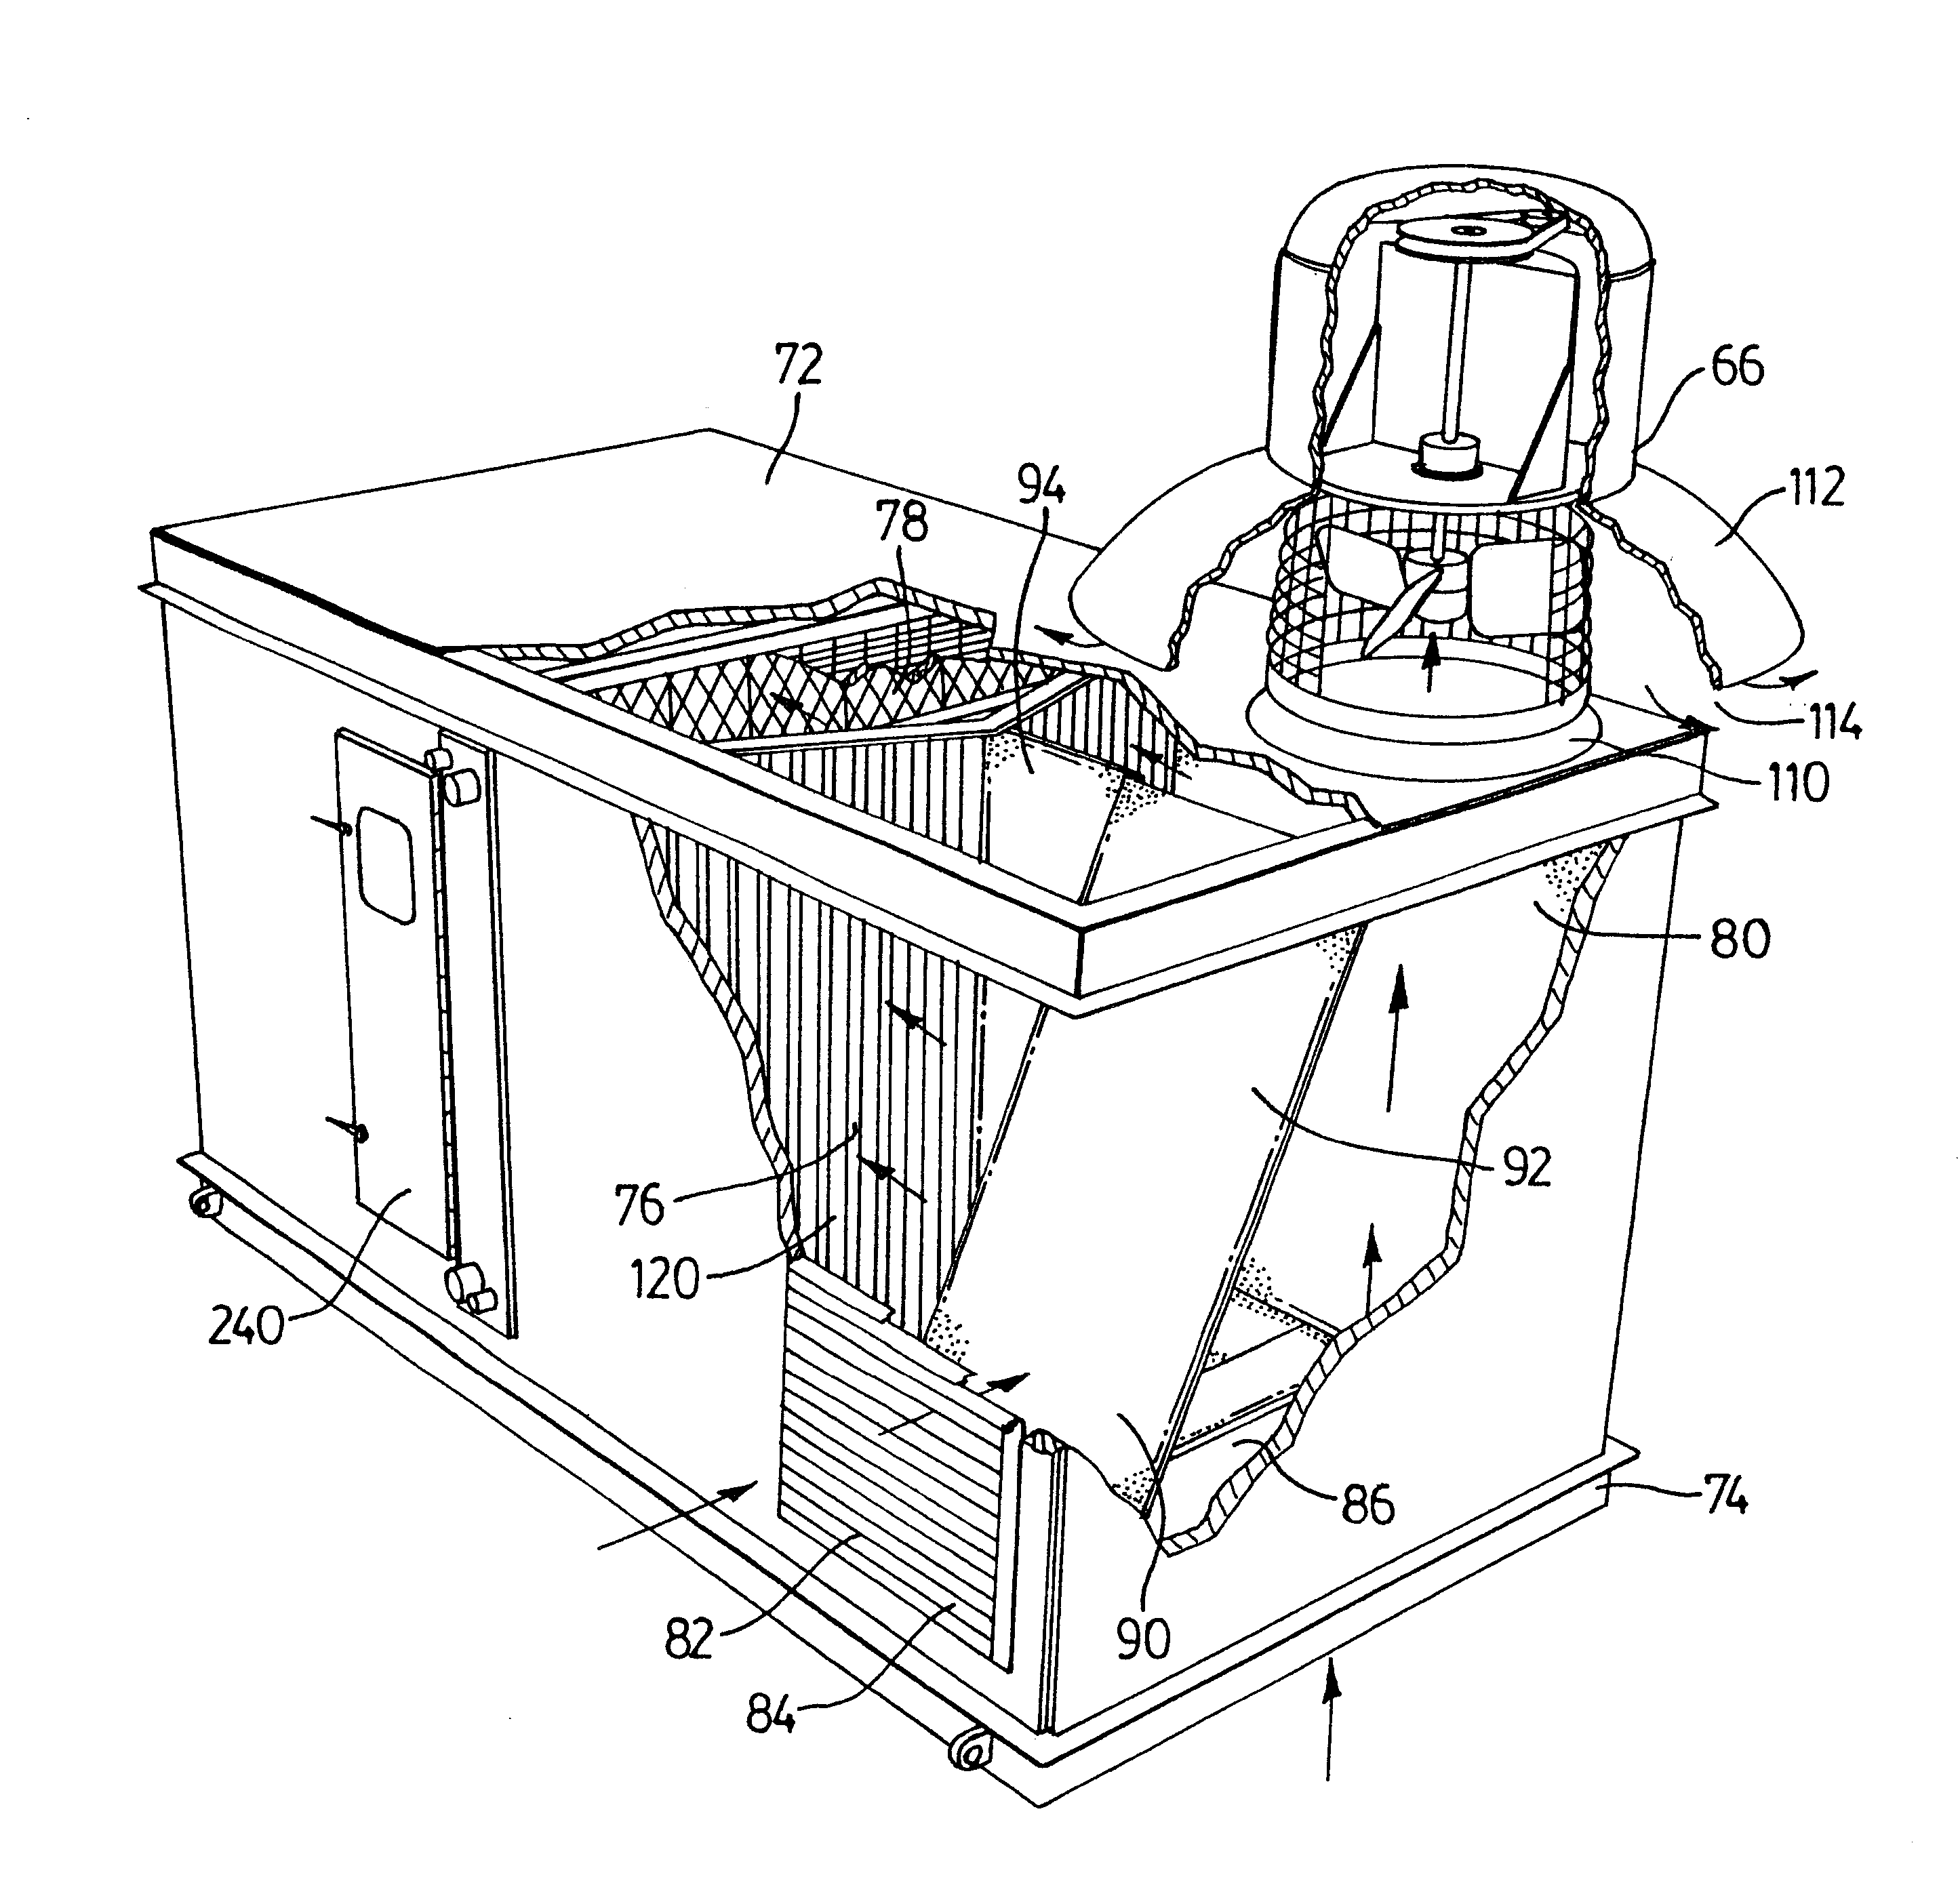 Patent US6688966 - Air handling unit with supply and exhaust